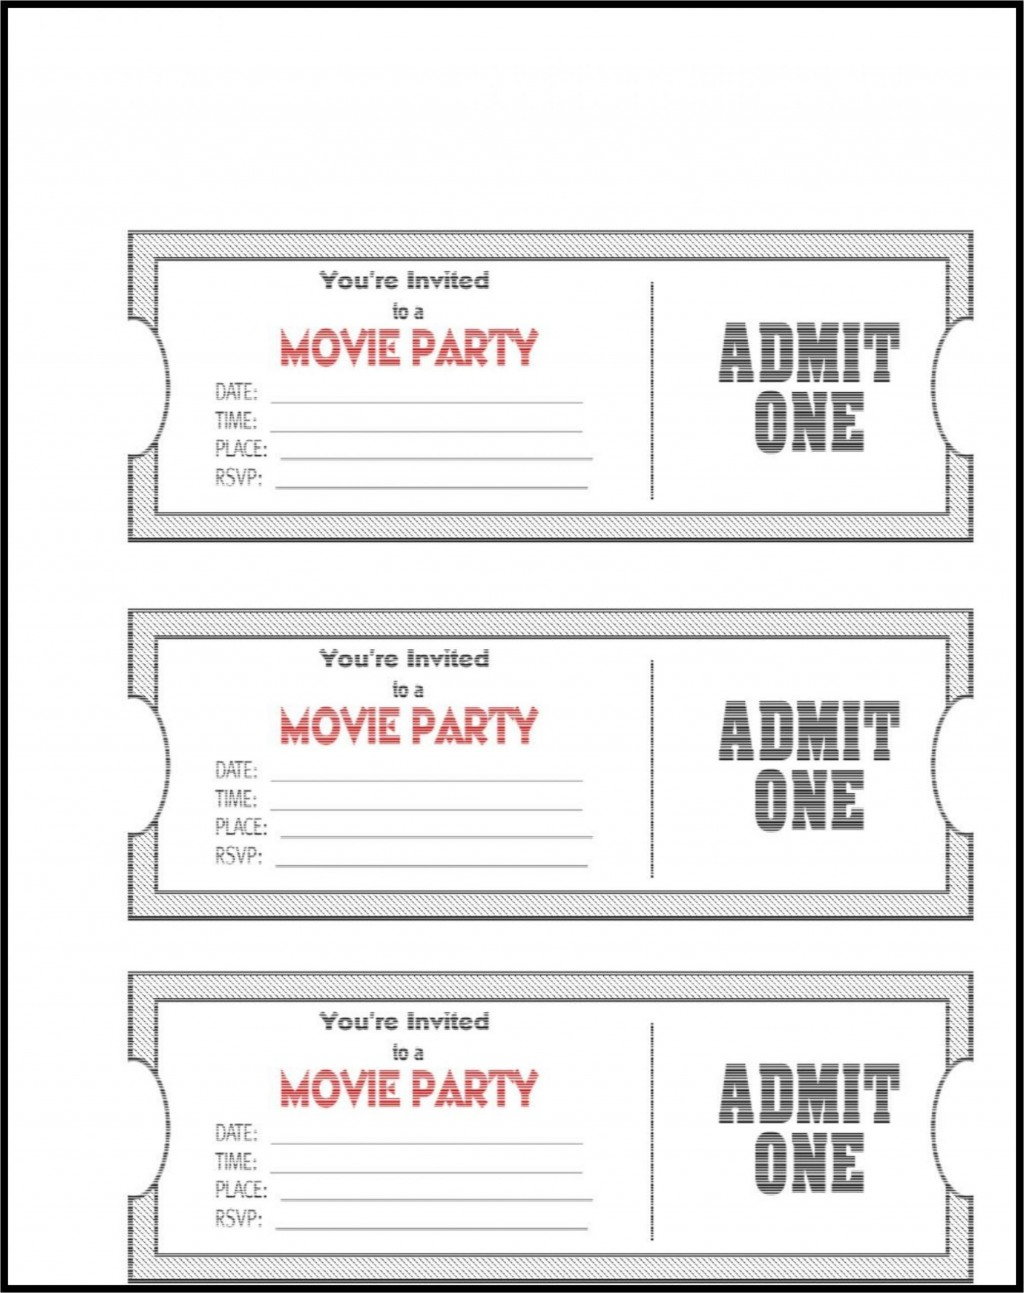 006 Impressive Editable Ticket Template Free High Definition  Word Airline RaffleLarge